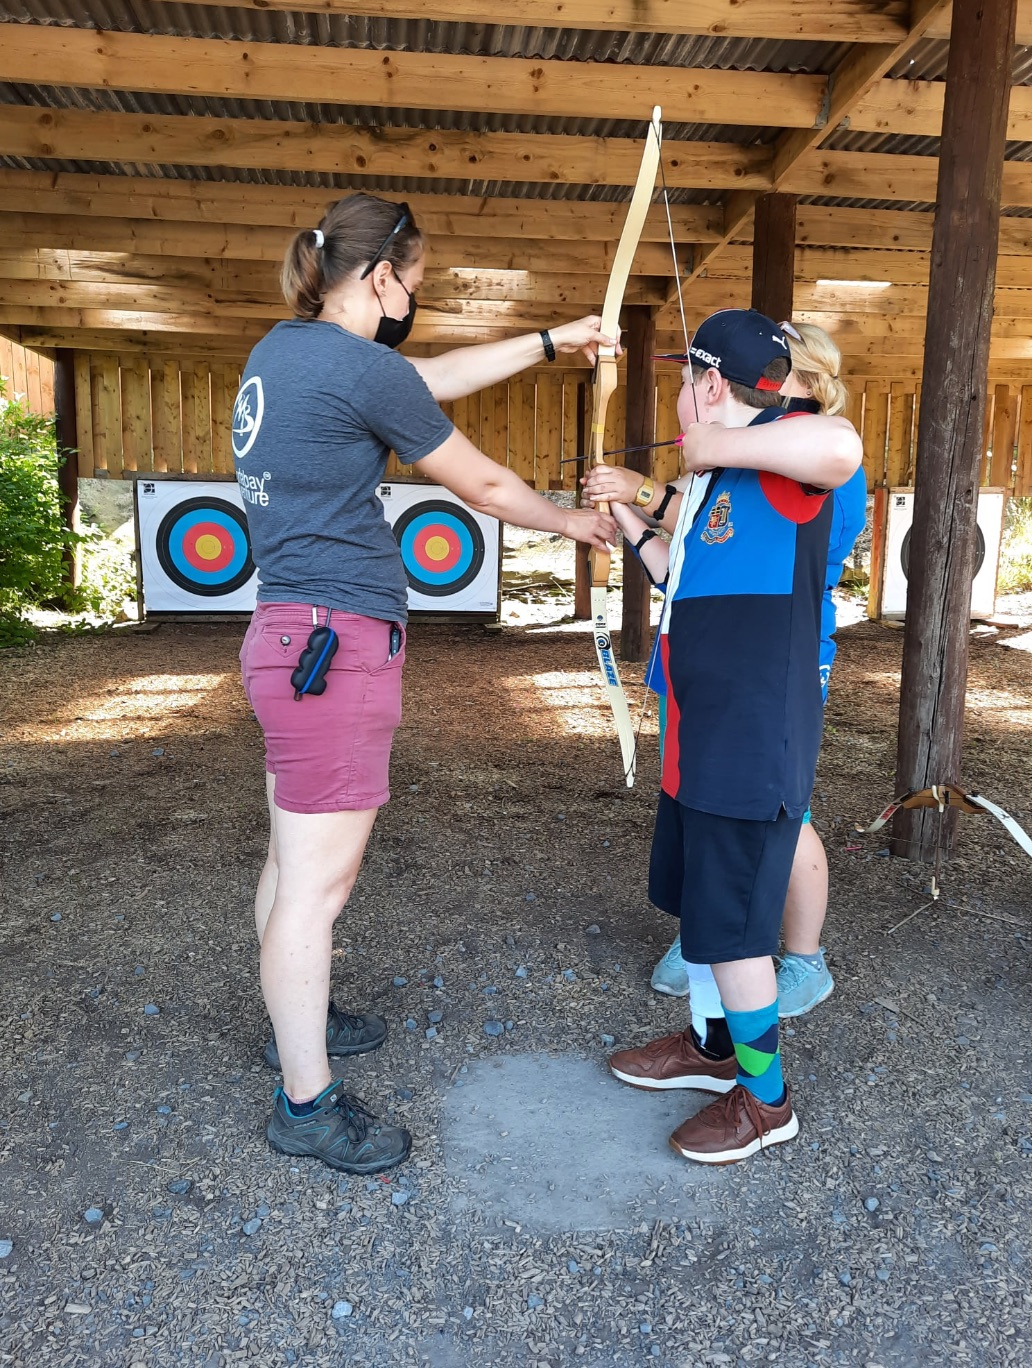 A young person takes part in archery at a Whizz-Kidz club